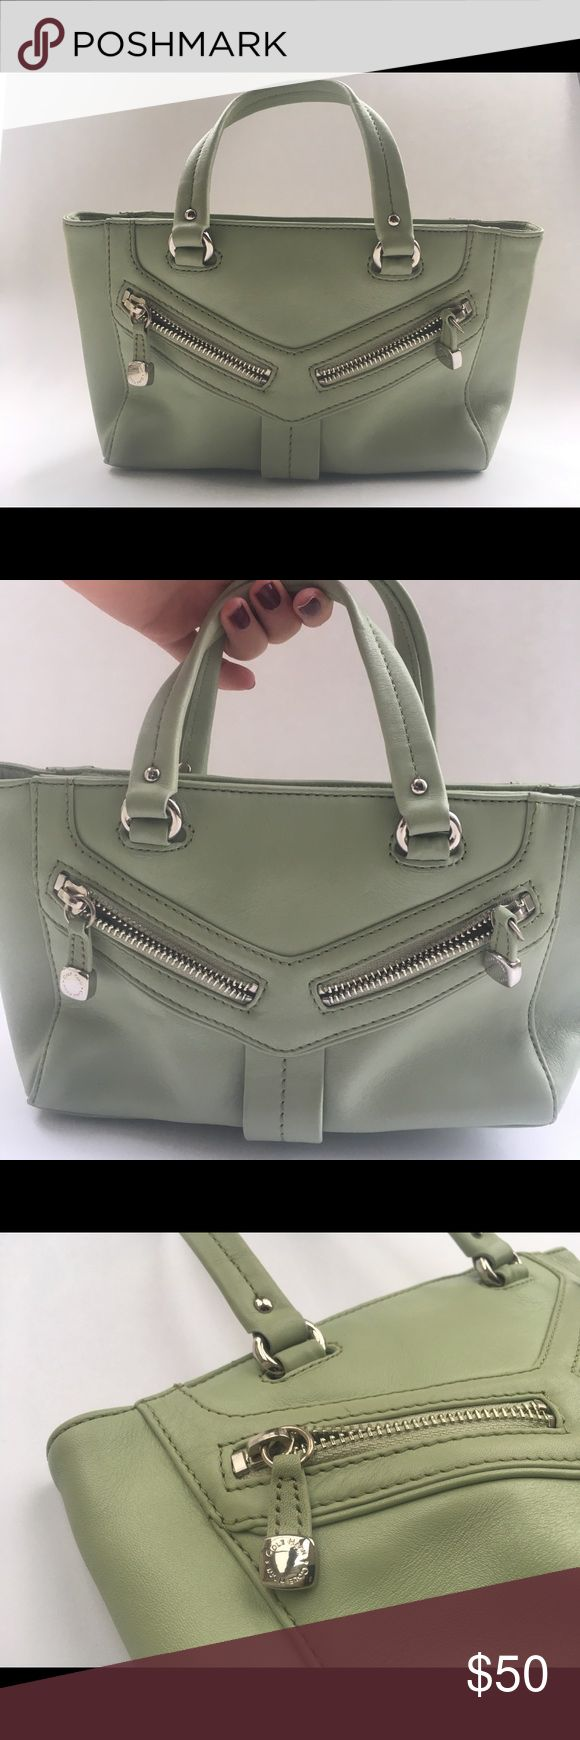 """Cole Haan Handbag Mint Green SOLD OUT! Absolutely gorgeous Cole Haan Alexa Bag! Beautiful mint green color-perfect for spring! Excellent condition. Super soft leather. Silver zippered detailing. Dimensions: Approx. 10.5"""" L x 5.5"""" H x 4.75"""" D Extremely minor flaws, and the interior is in perfect shape (see pictures)! We will consider offers!  Please note: All sales are final, no returns or exchanges. Cole Haan Bags Mini Bags"""